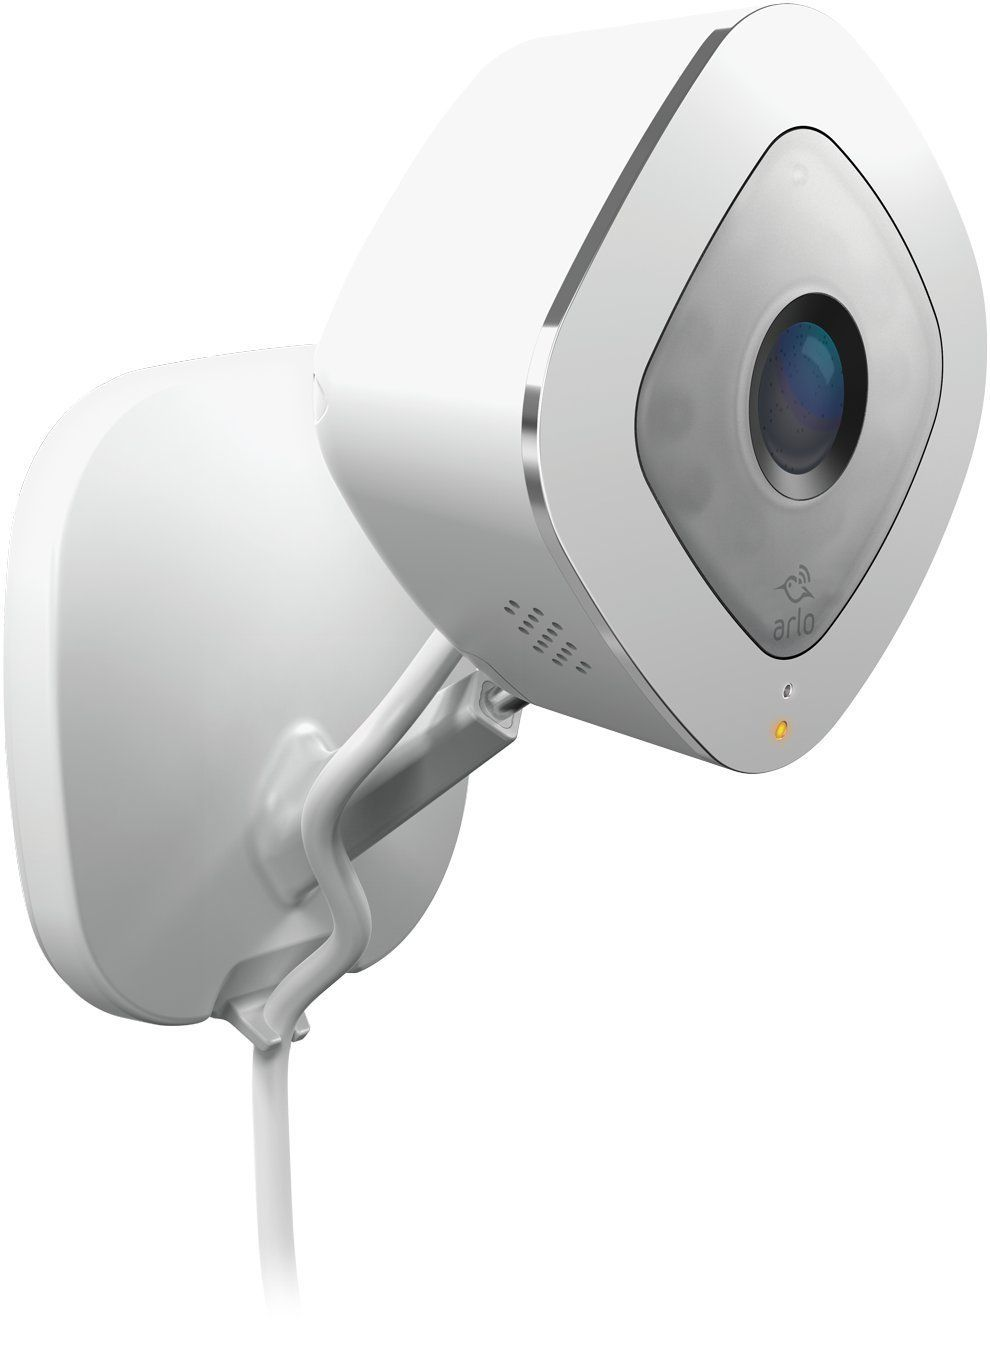 Robot Check Wireless Home Security Home Security Systems Home Security